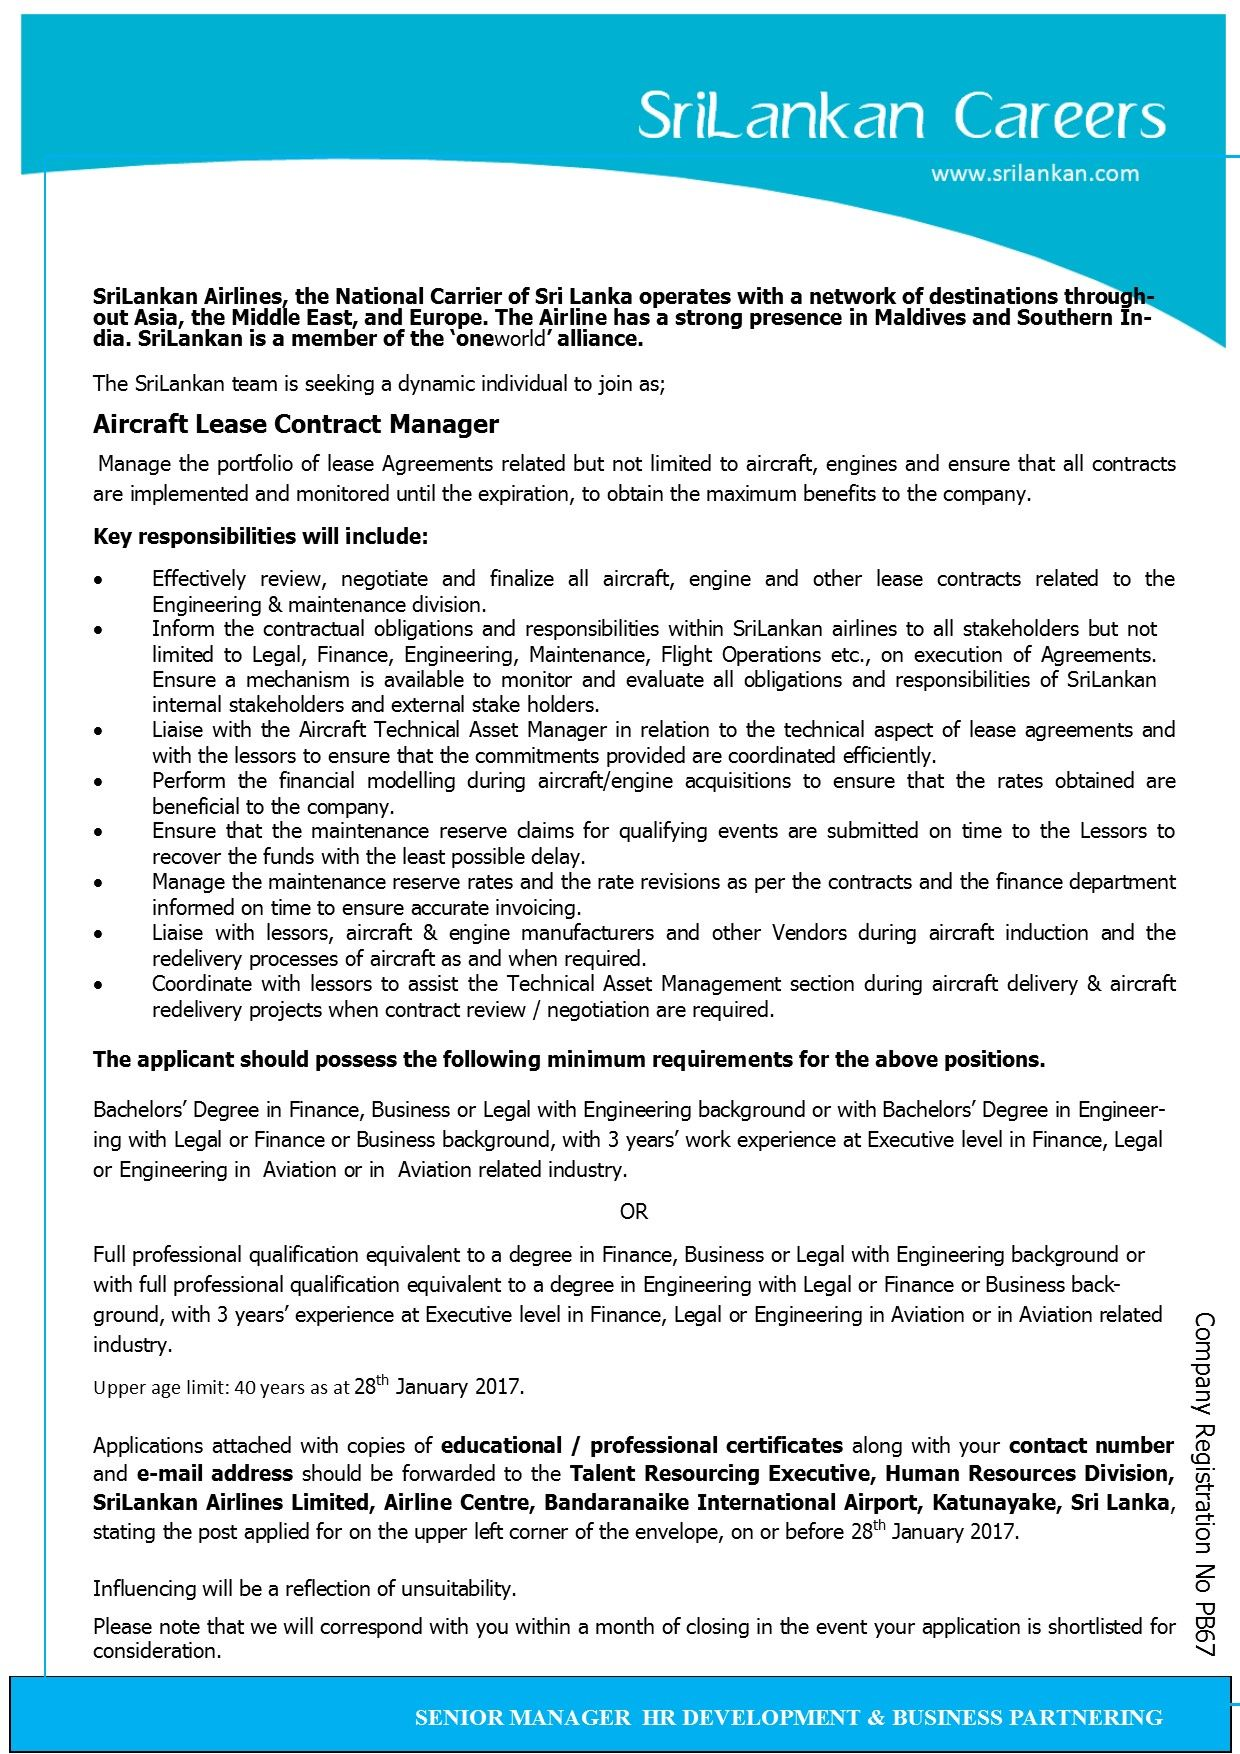 Aircraft Lease Contract Manager At Sri Lankan Airlines  Career